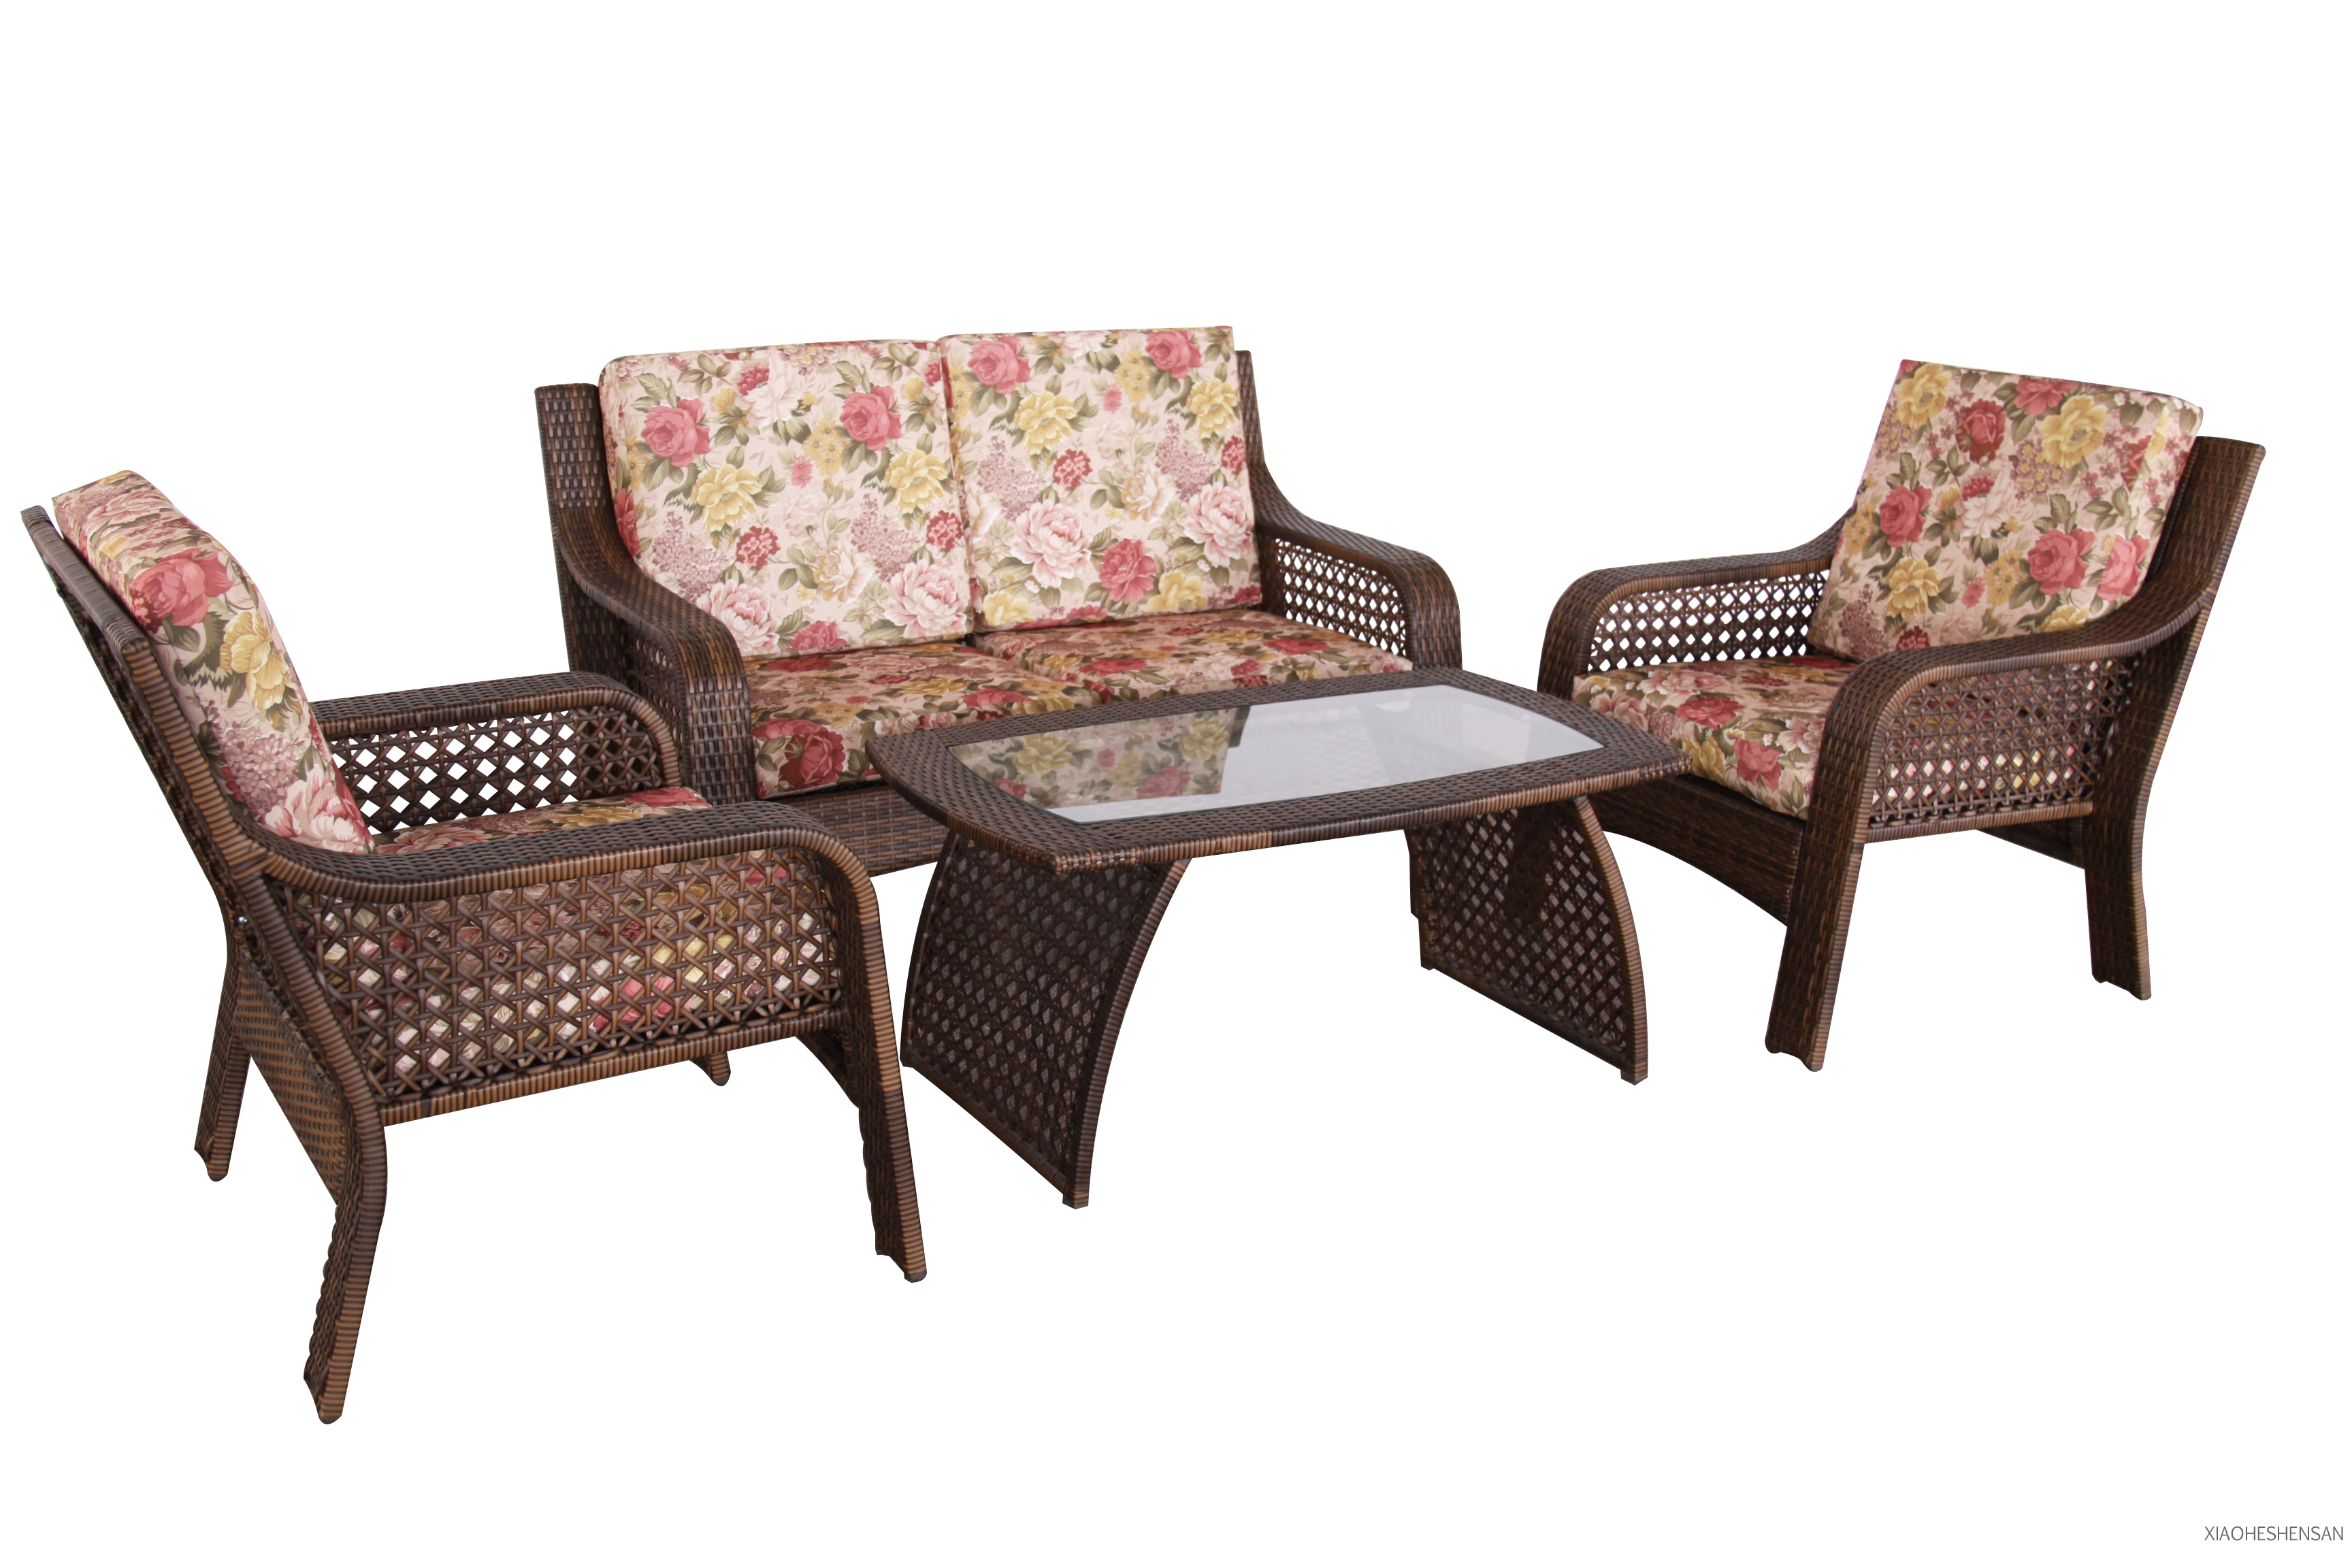 outdoor furniture rattan set table chair double sofa single sofa